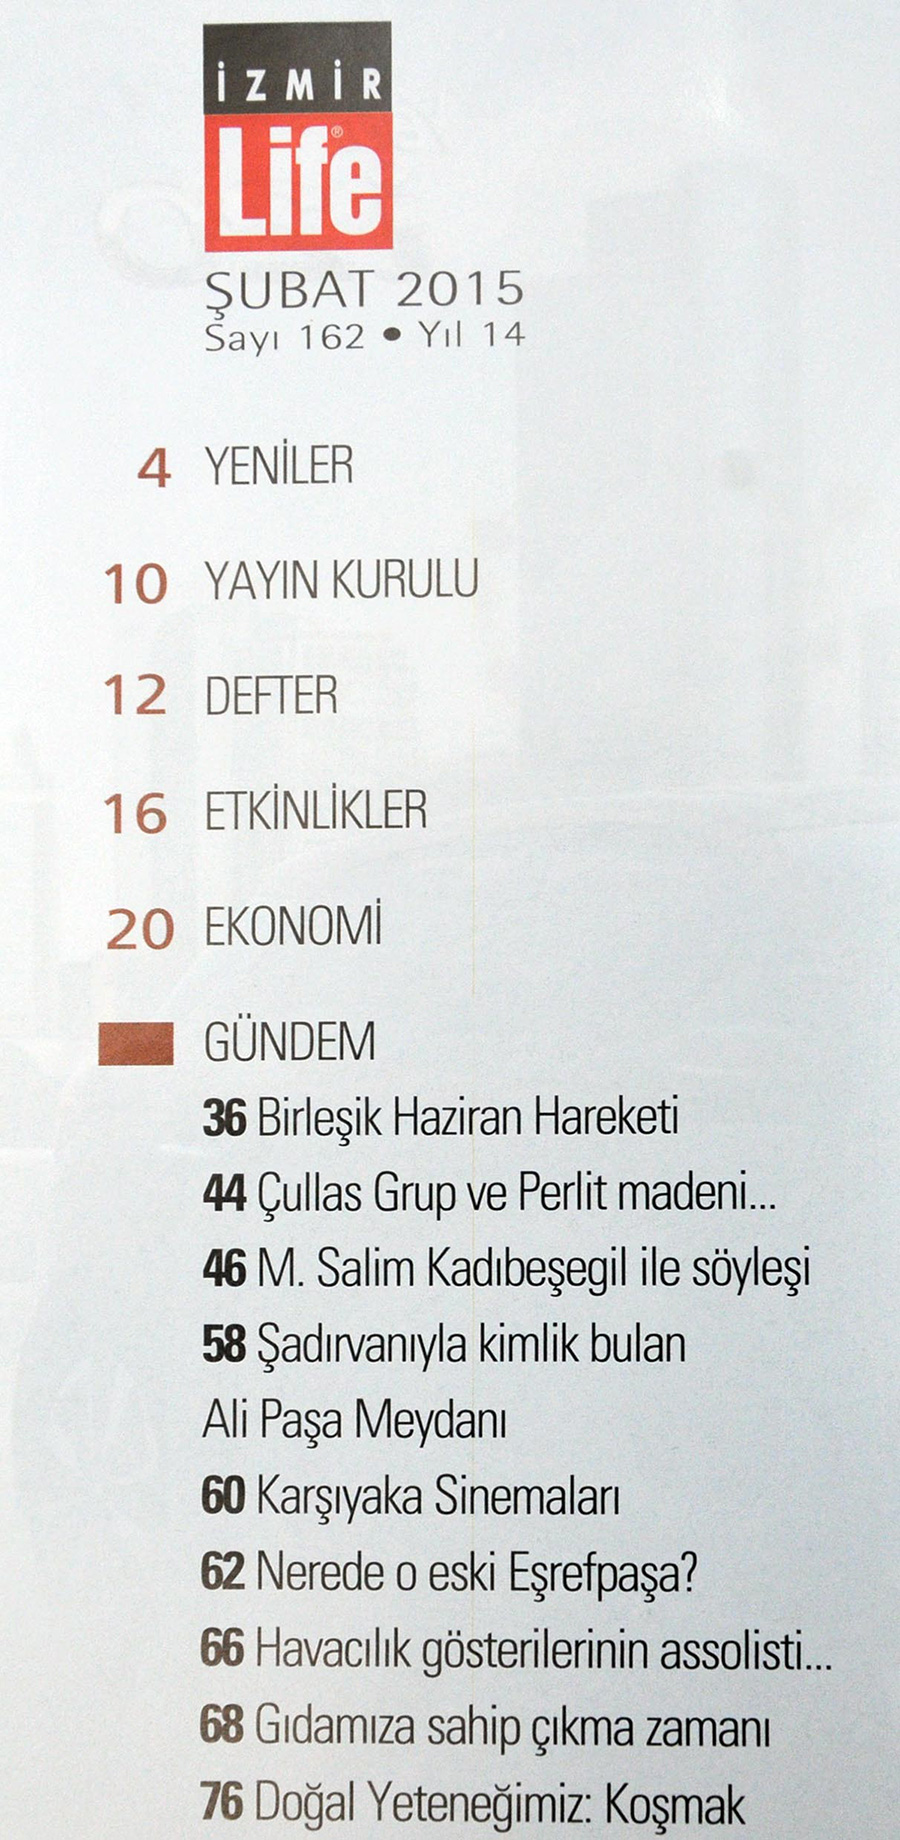 Çullas Group ve Perlit Madeni